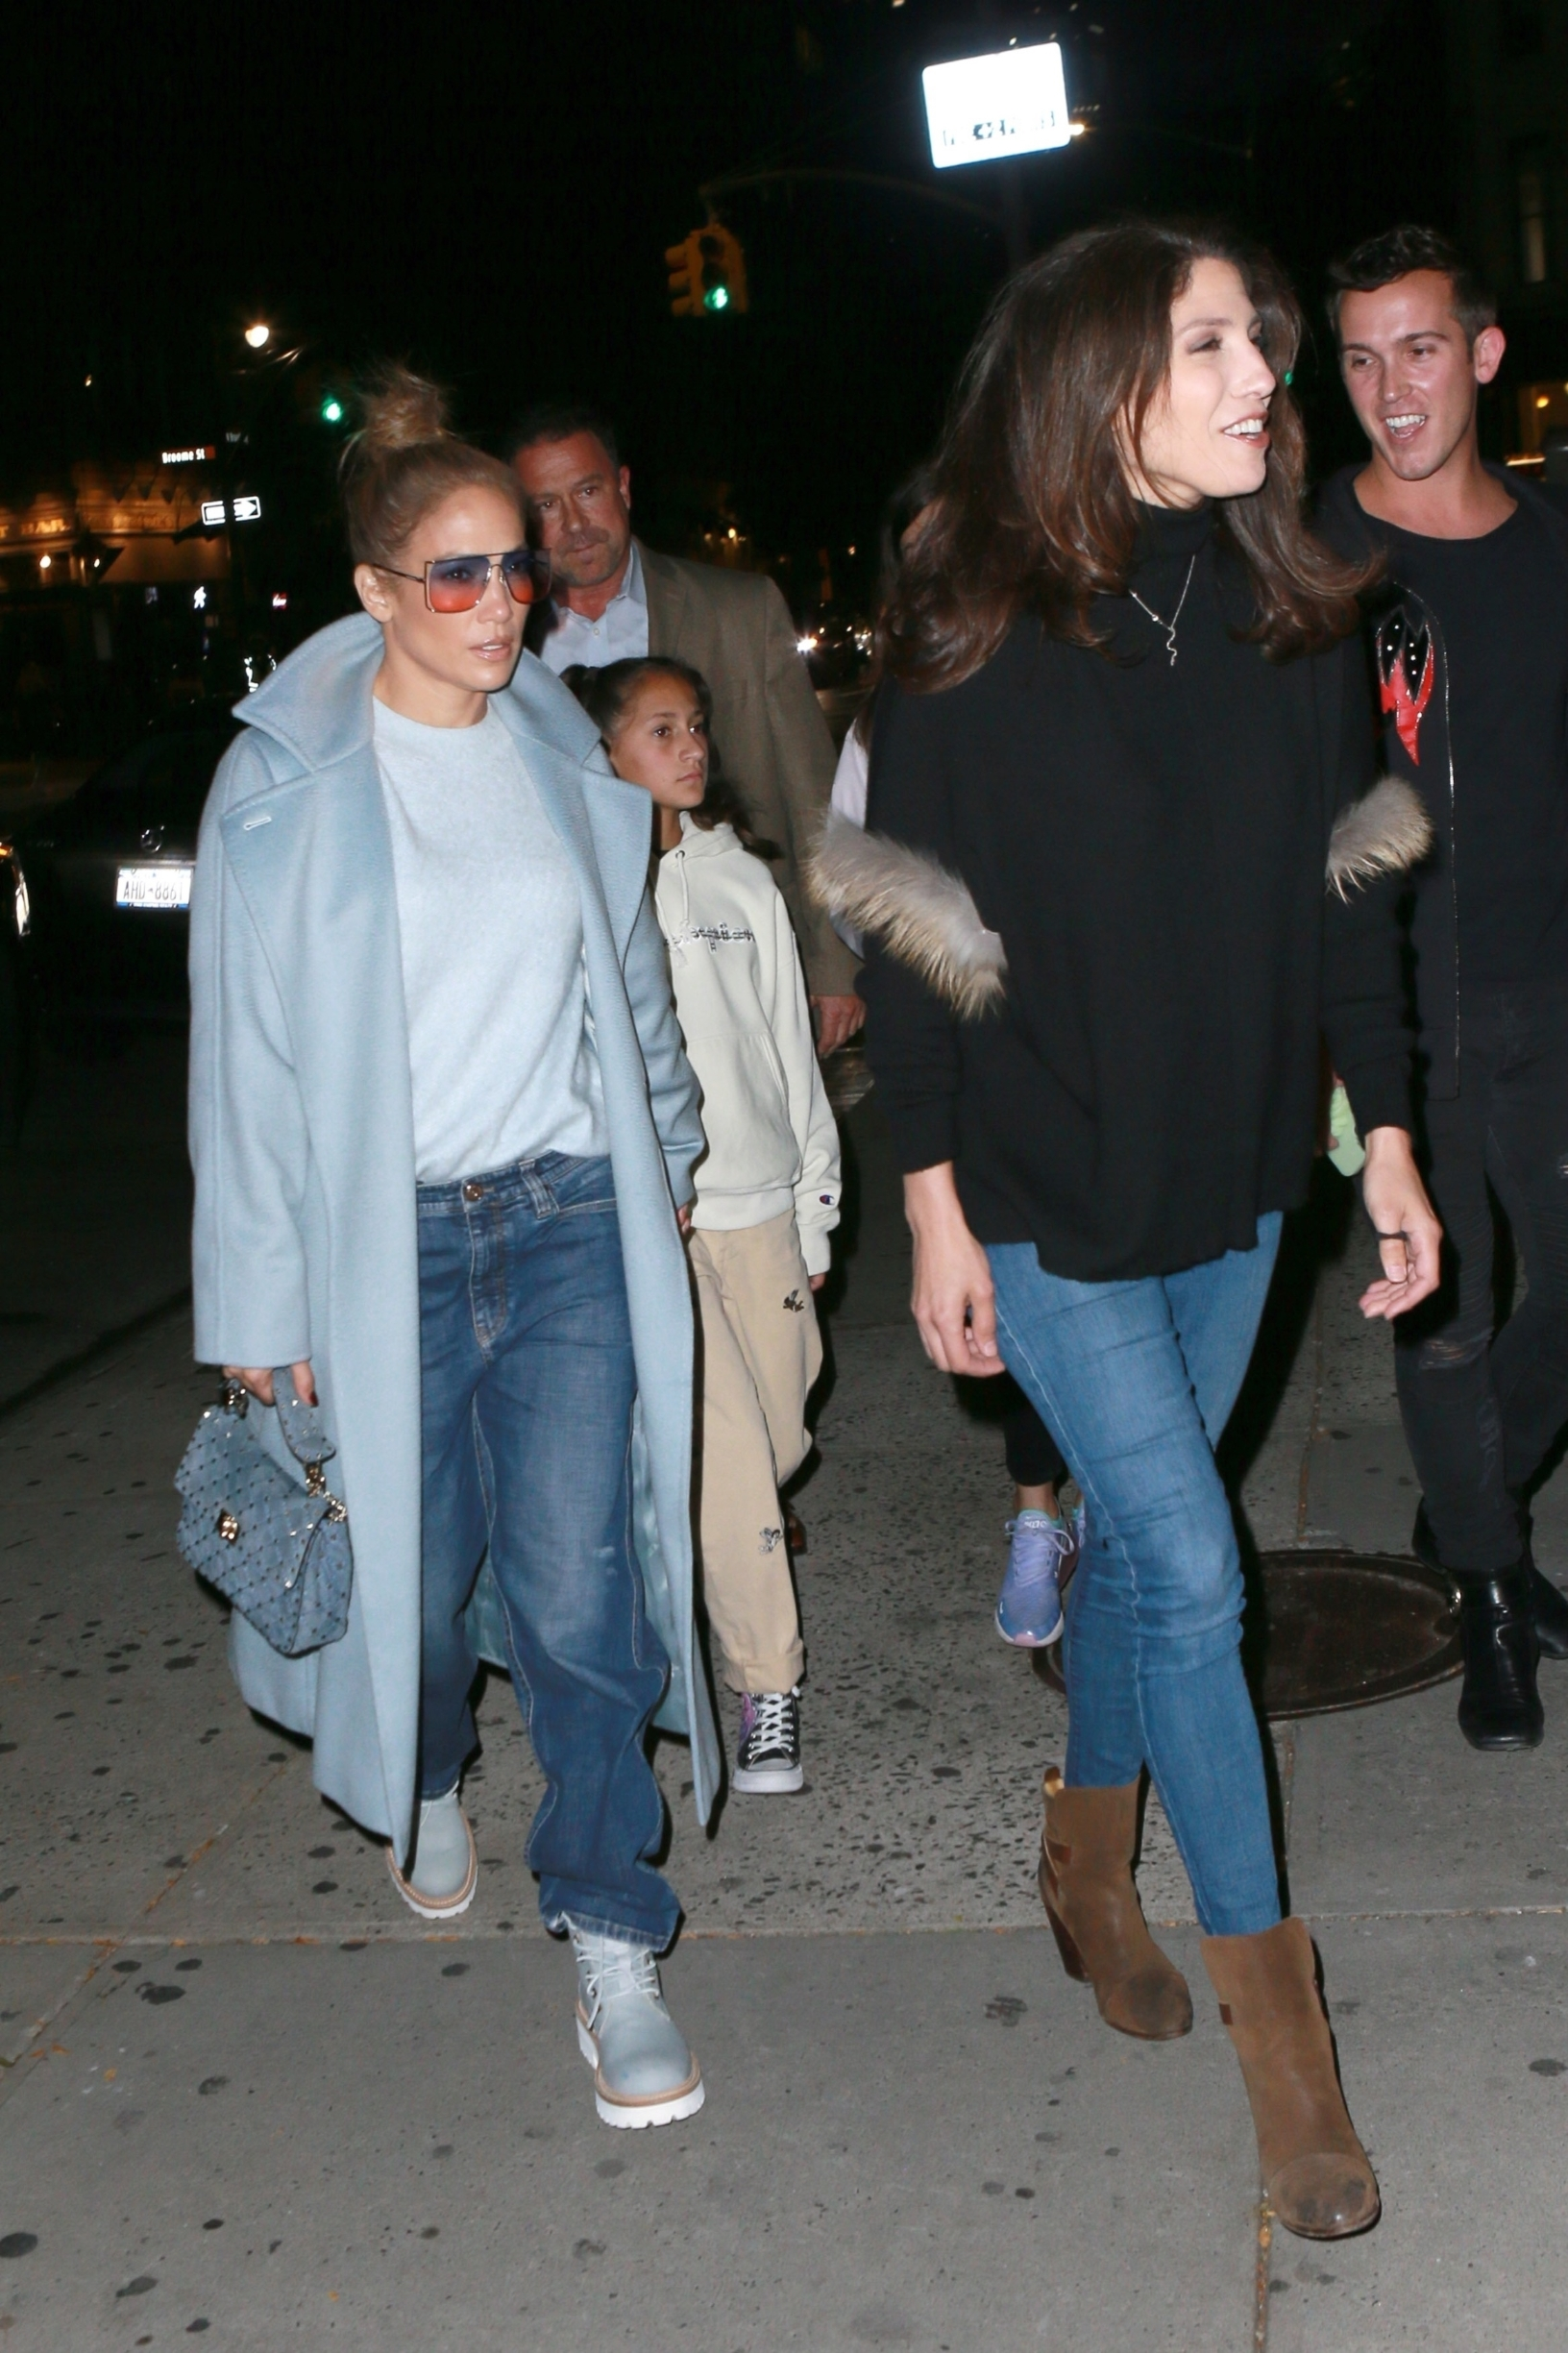 New York, NY  - Jennifer Lopez heads to Cipriani with her sister and kids for some dinner. The singer and actress looked great in a light blue coat and jeans.  BACKGRID USA 12 OCTOBER 2019, Image: 476420332, License: Rights-managed, Restrictions: , Model Release: no, Credit line: T.JACKSON / BACKGRID / Backgrid USA / Profimedia